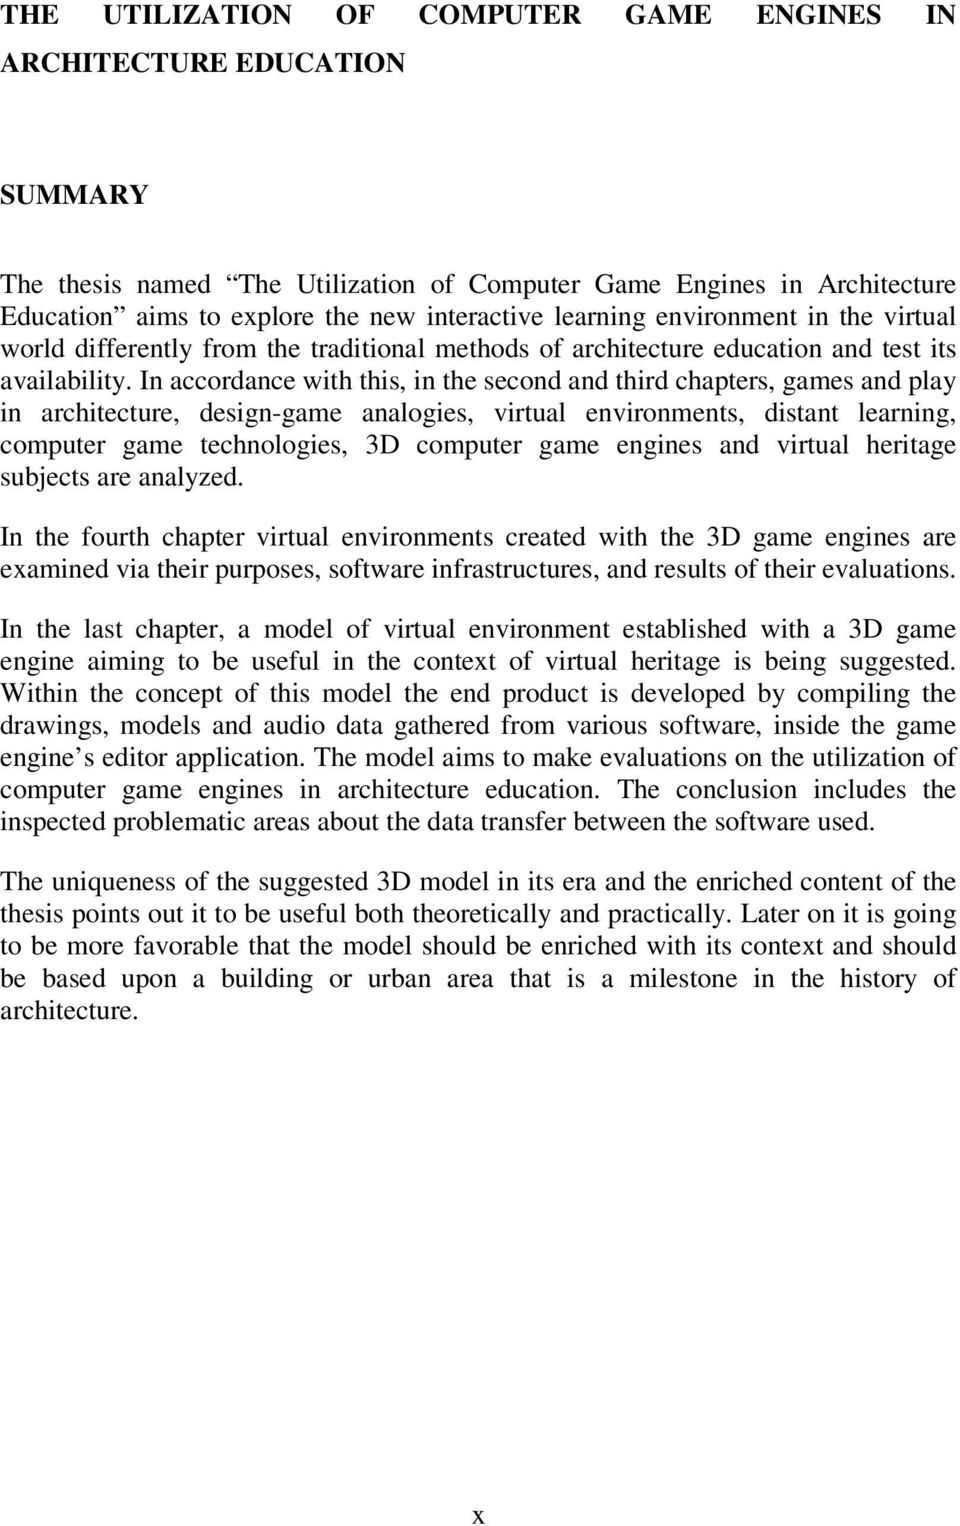 In accordance with this, in the second and third chapters, games and play in architecture, design-game analogies, virtual environments, distant learning, computer game technologies, 3D computer game